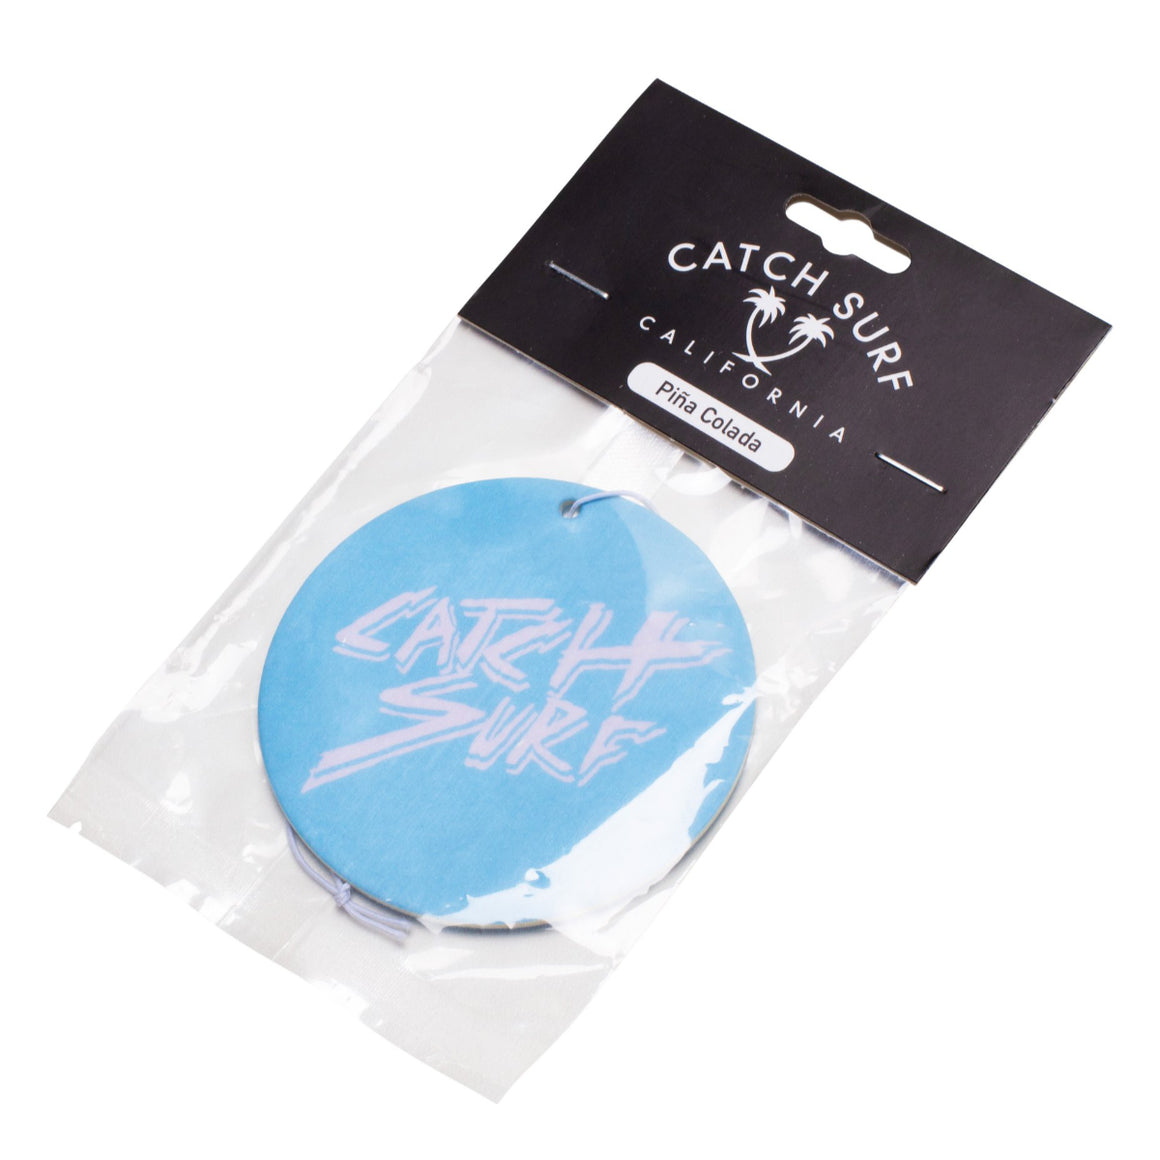 Catch Surf Air Freshener #